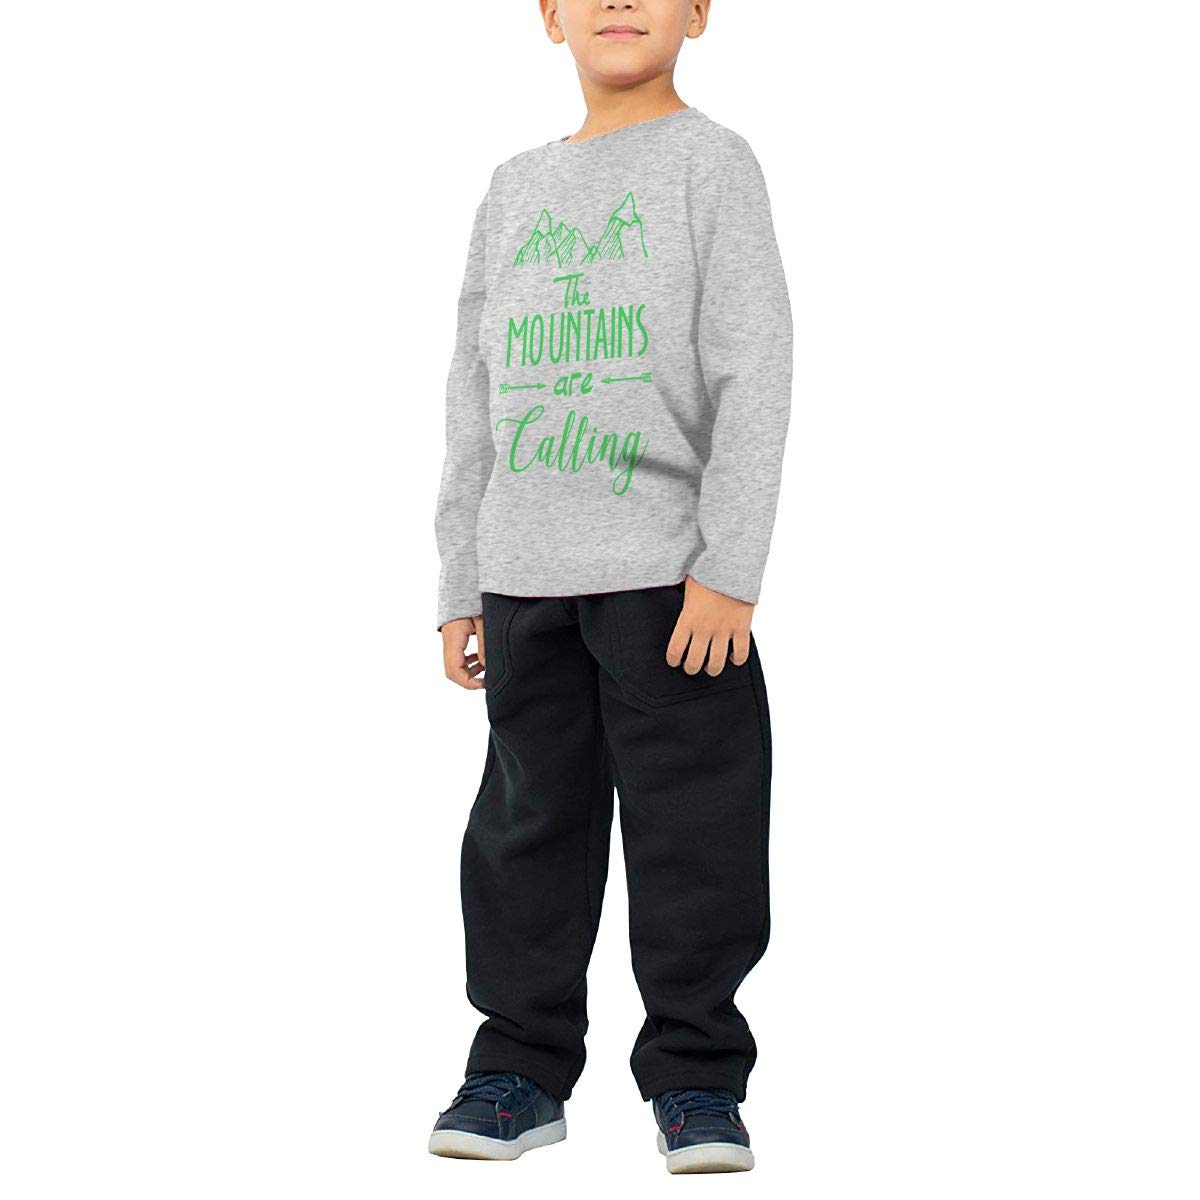 Mountains are Calling Childrens Gray Cotton Long Sleeve Round Neck T-Shirt for Boy Or Girl